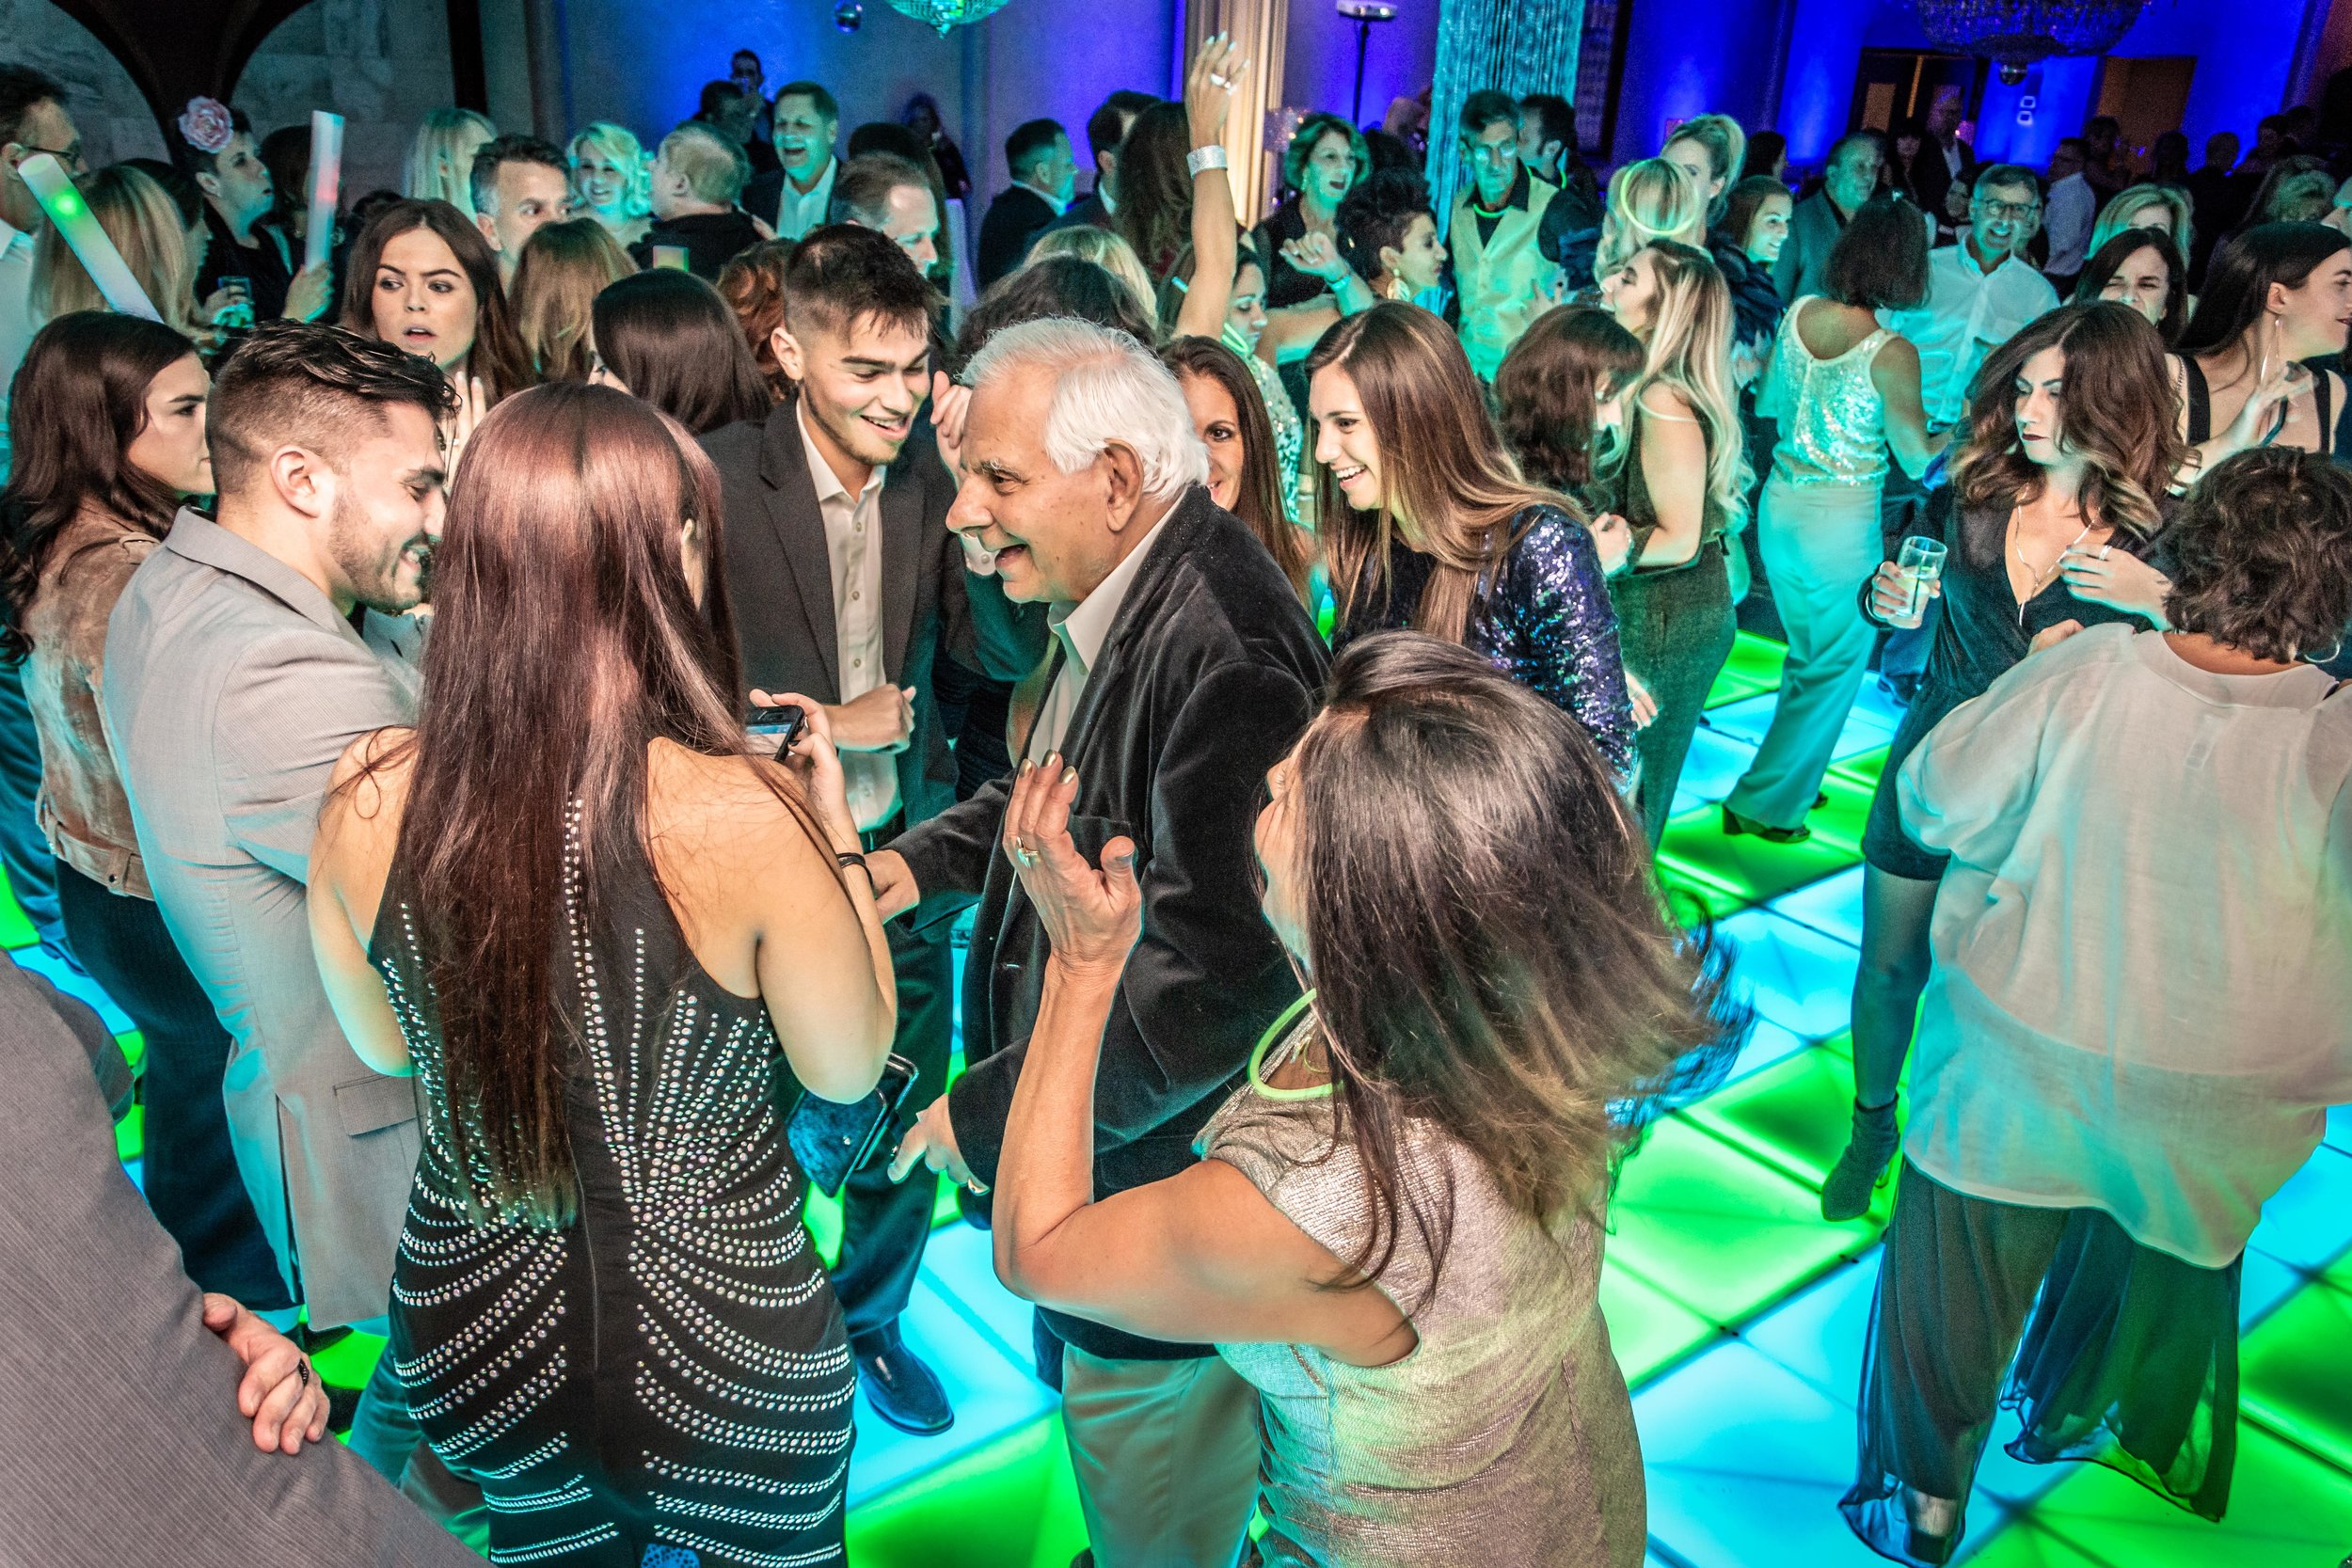 LED Dance Floor Green Teal.jpg